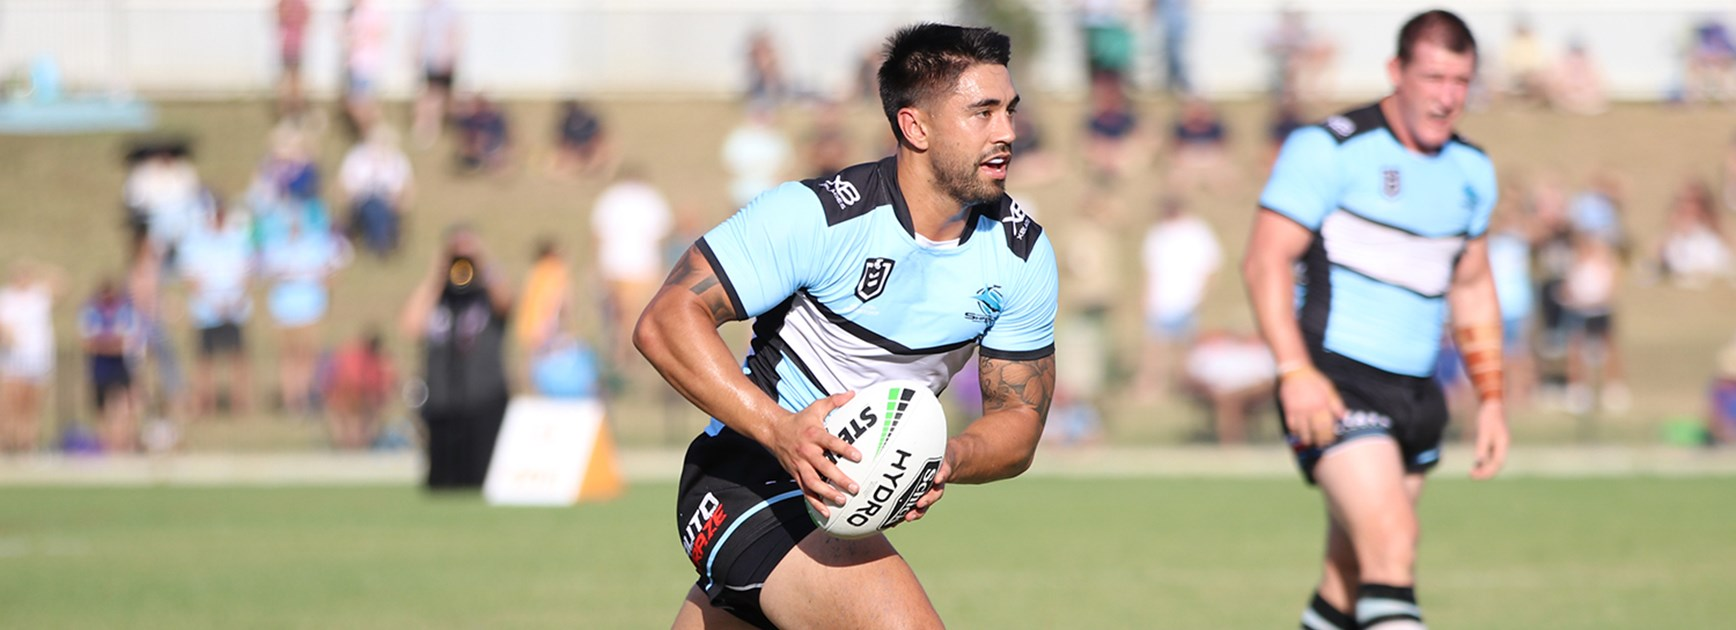 Sharks score impressive trial win